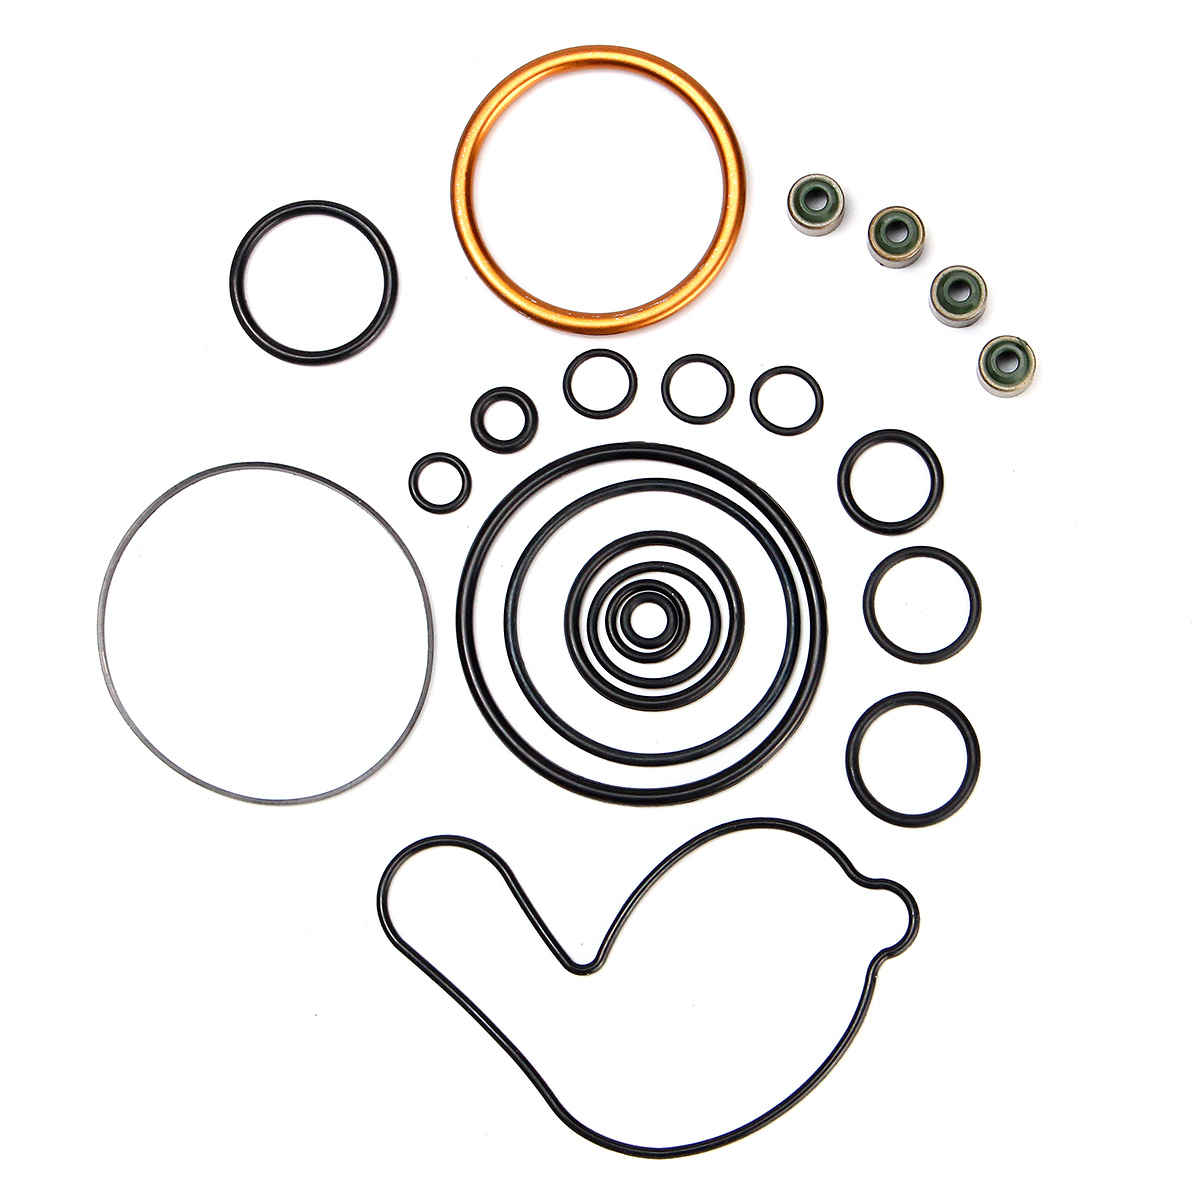 Original Cylinder Pad Engine Gasket For Yamaha YFZ450 2004